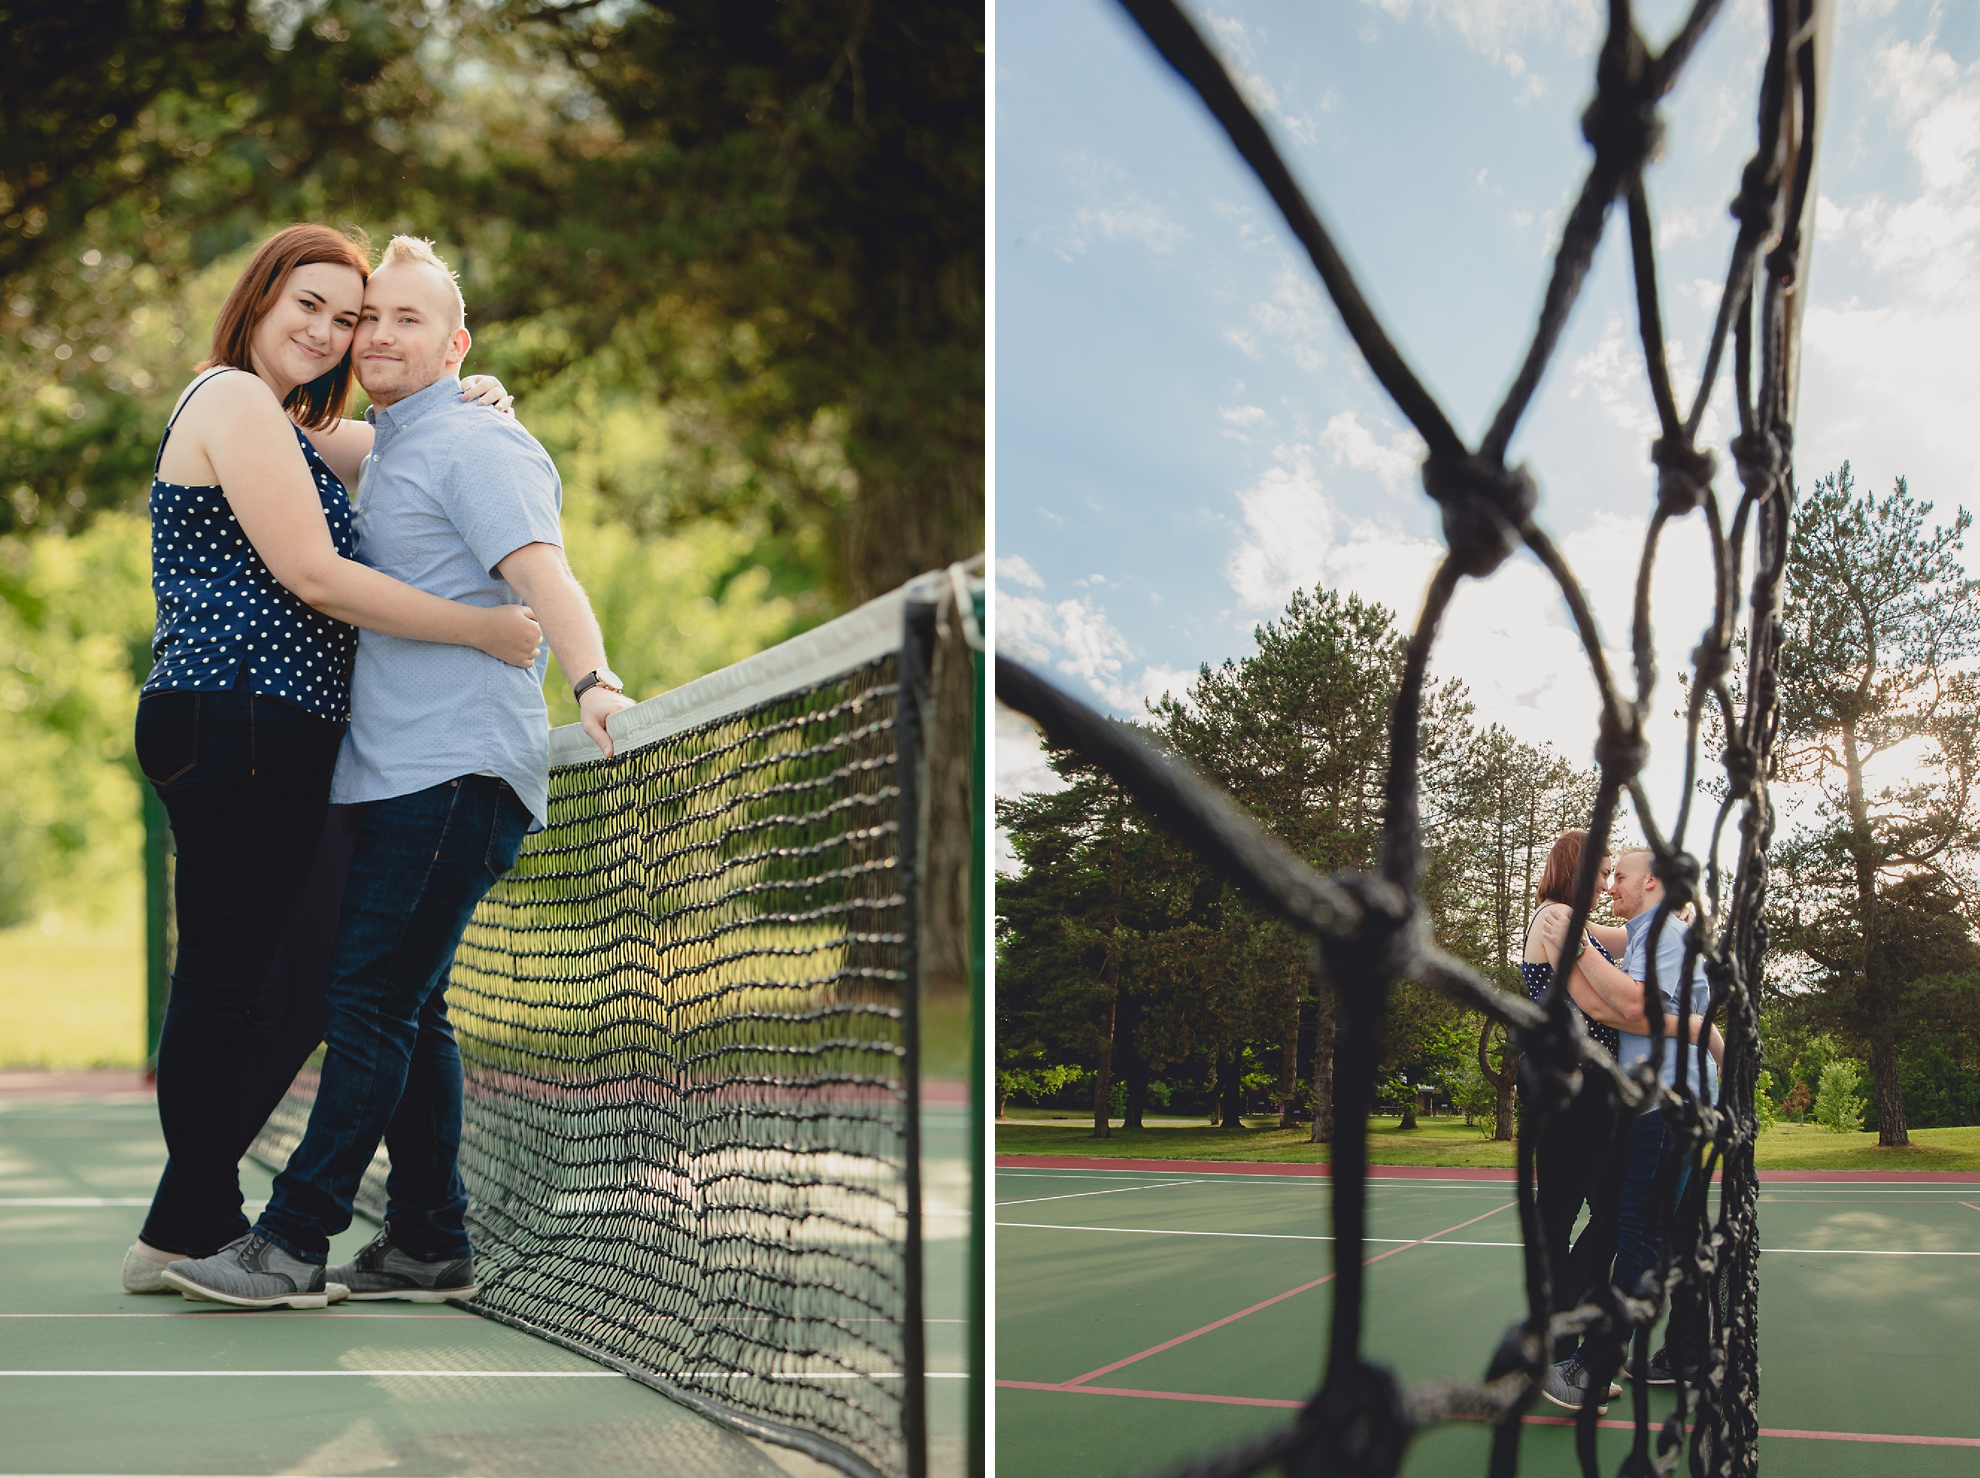 engaged couple poses for photographer while leaning against a tennis net at Akron Falls Park near Buffalo, NY